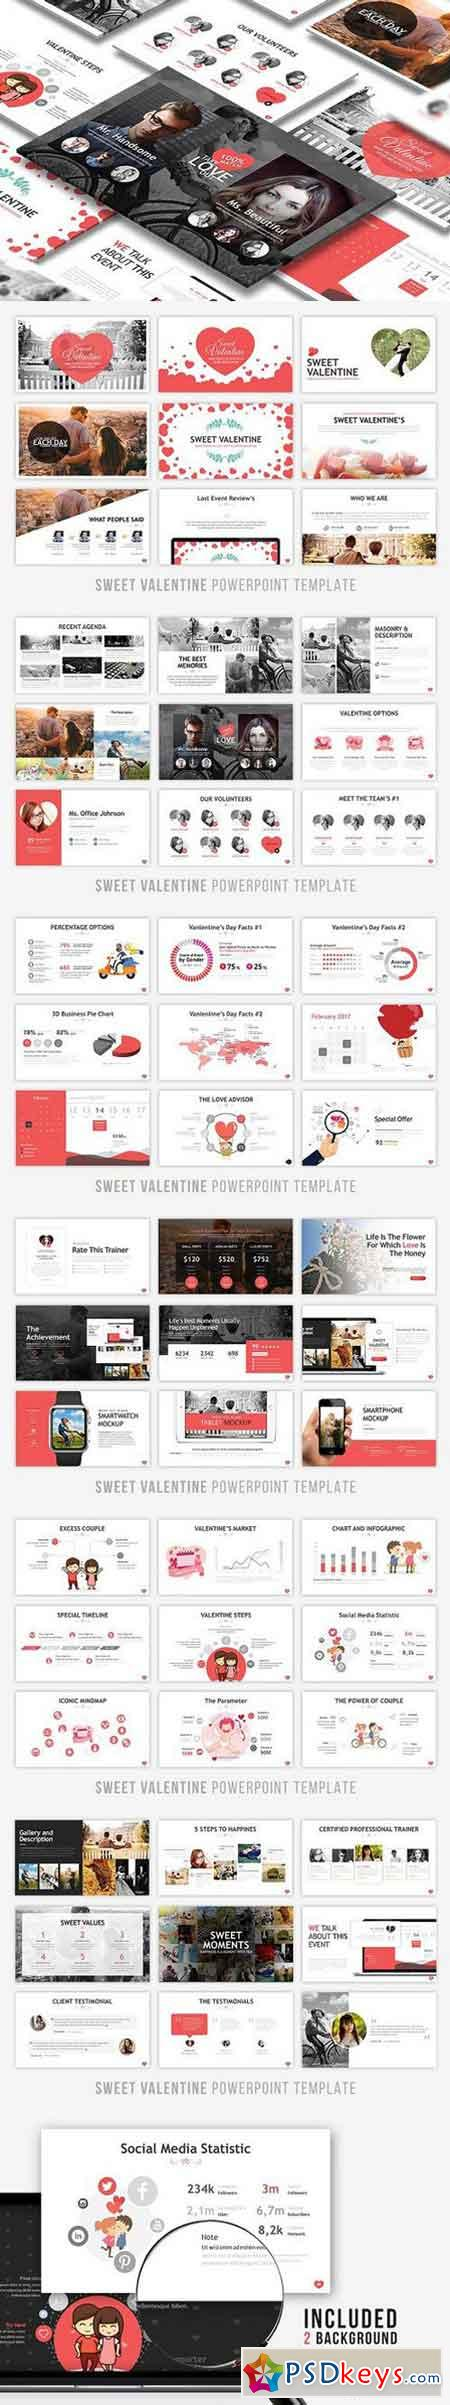 Sweet valentine powerpoint template 1223976 free download sweet valentine powerpoint template 1223976 alramifo Gallery